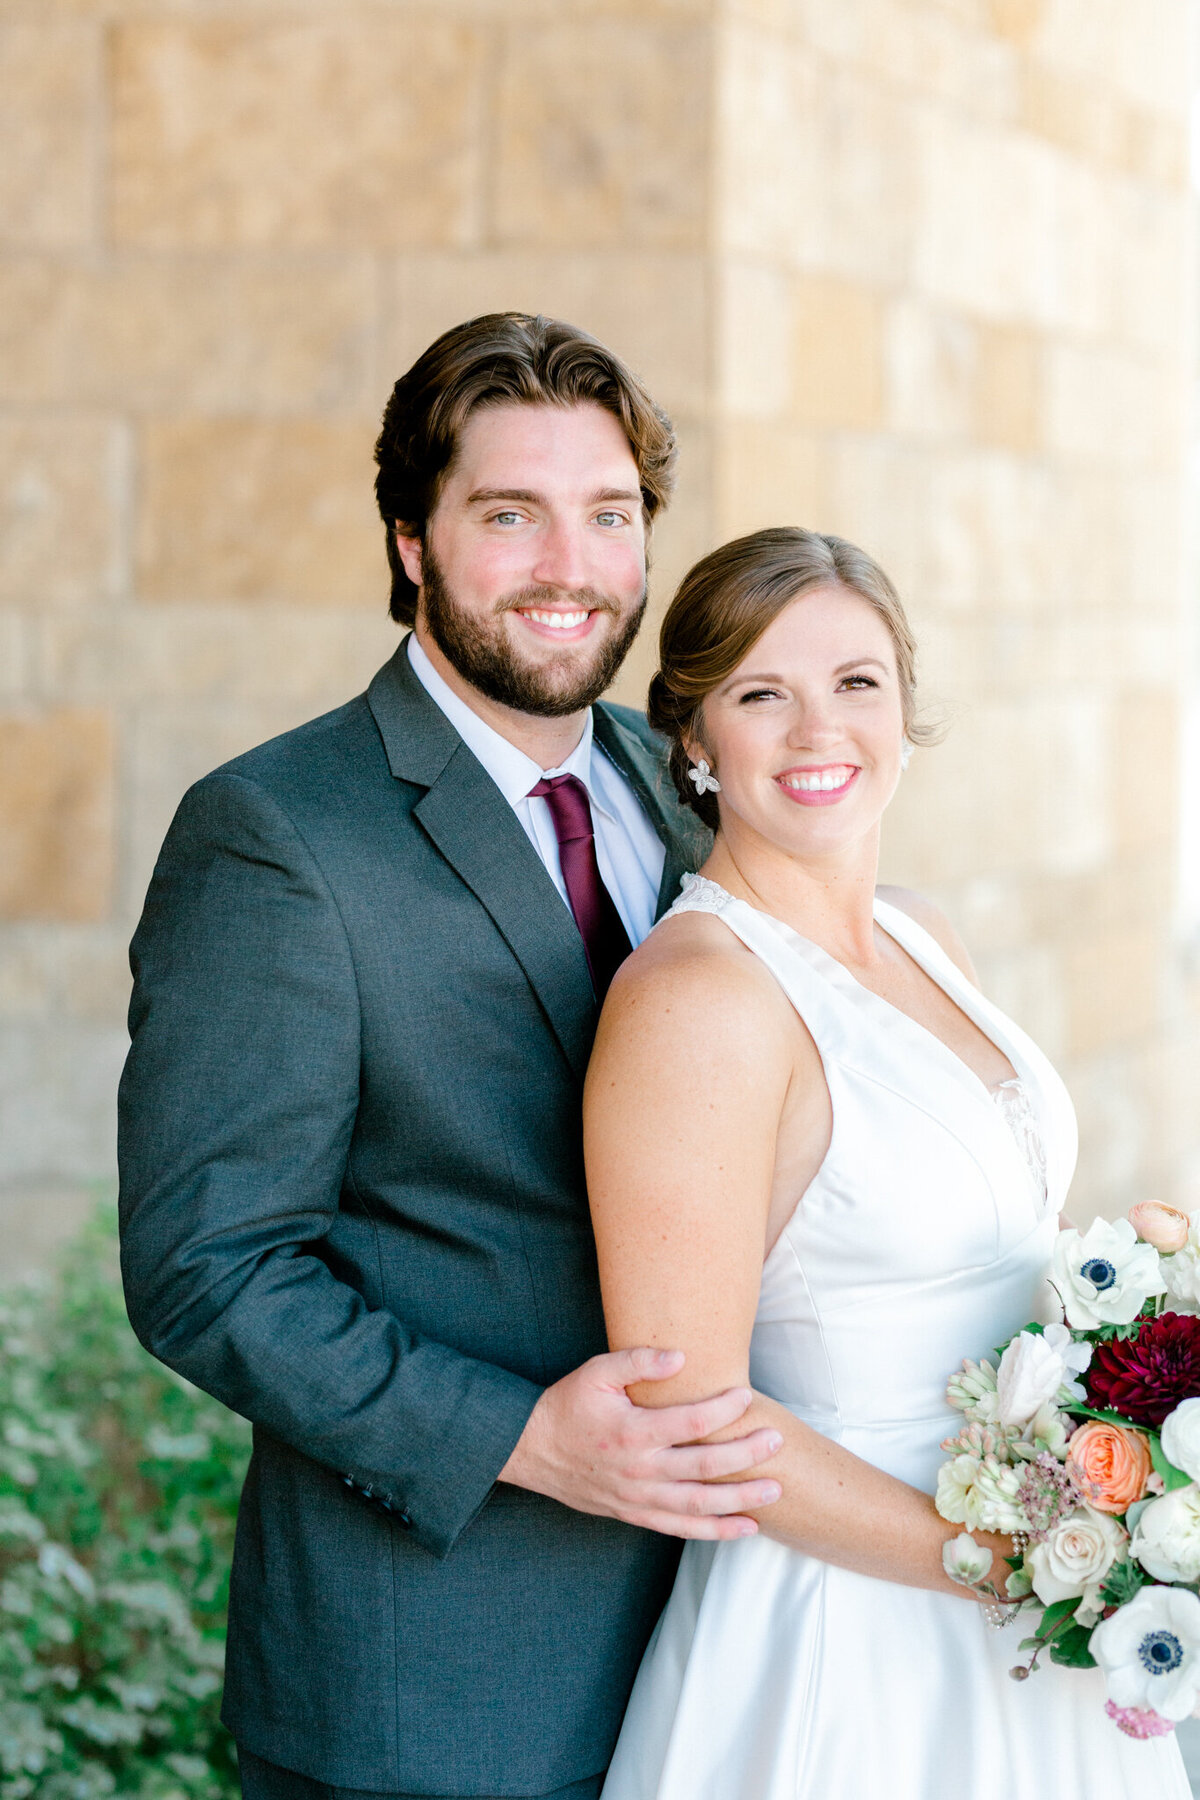 Kaylee & Michael's Wedding at Watermark Community Church | Dallas Wedding Photographer | Sami Kathryn Photography-54